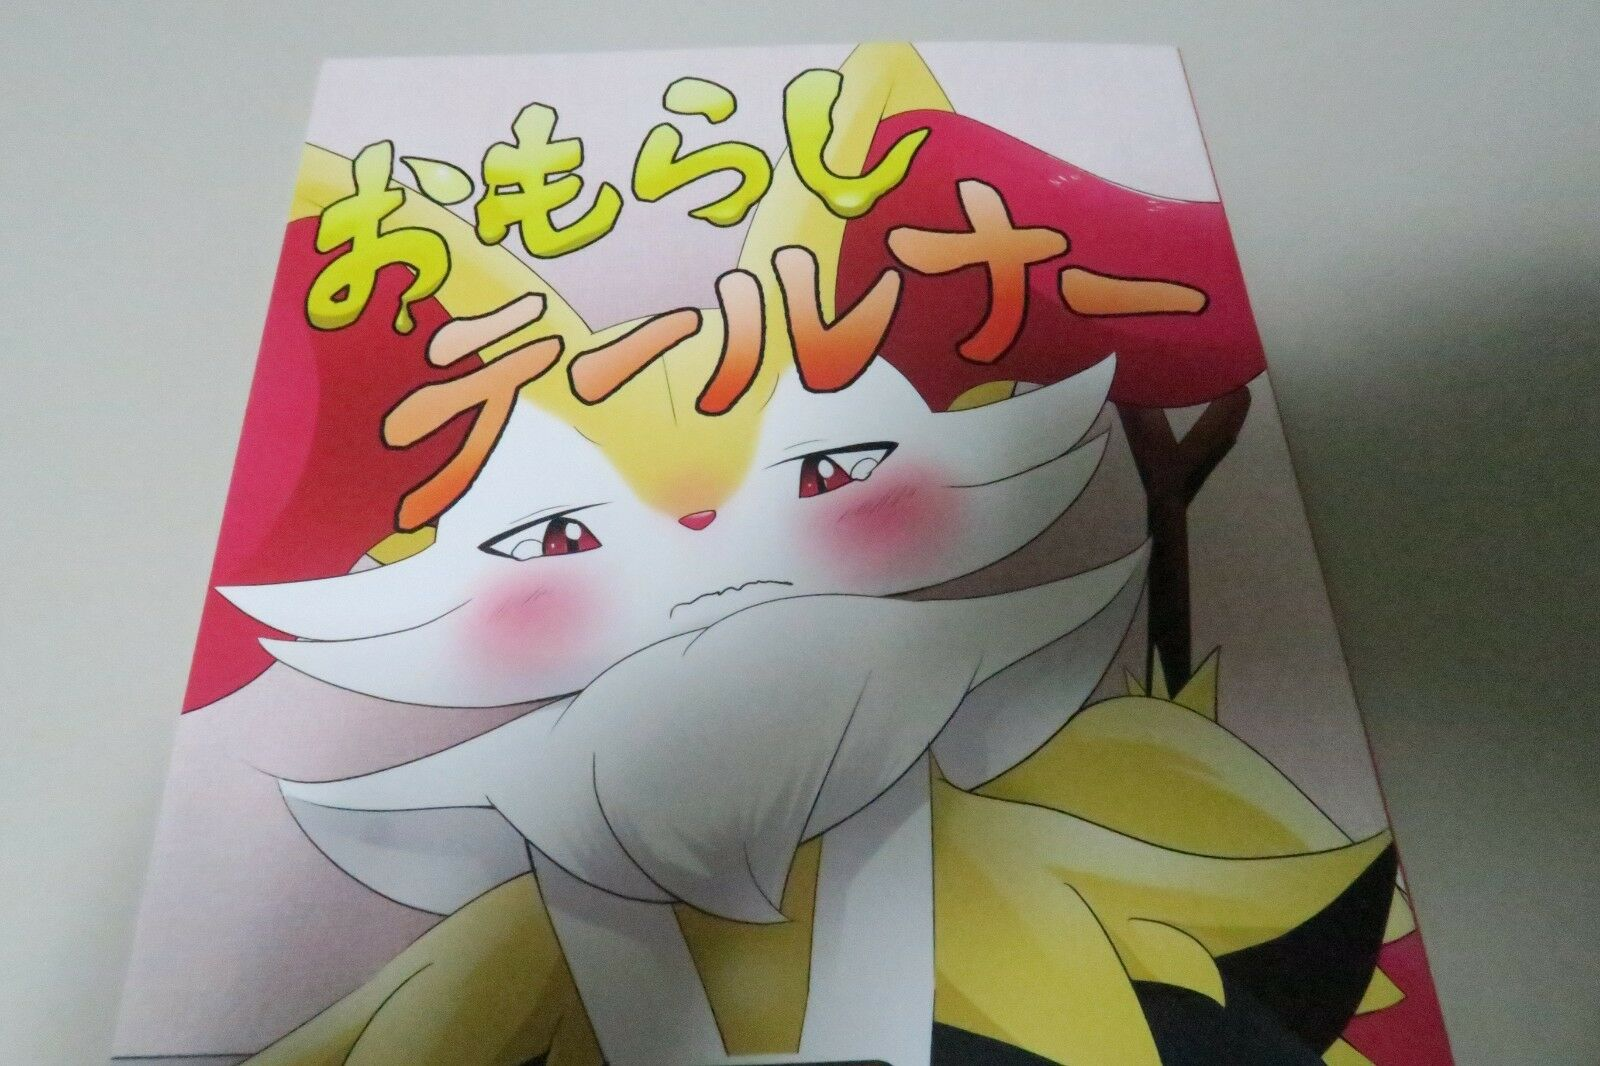 Doujinshi Pokemon Braixen Haupt (A5 20pages) Be-Art Be Kunst Omorashi Furry